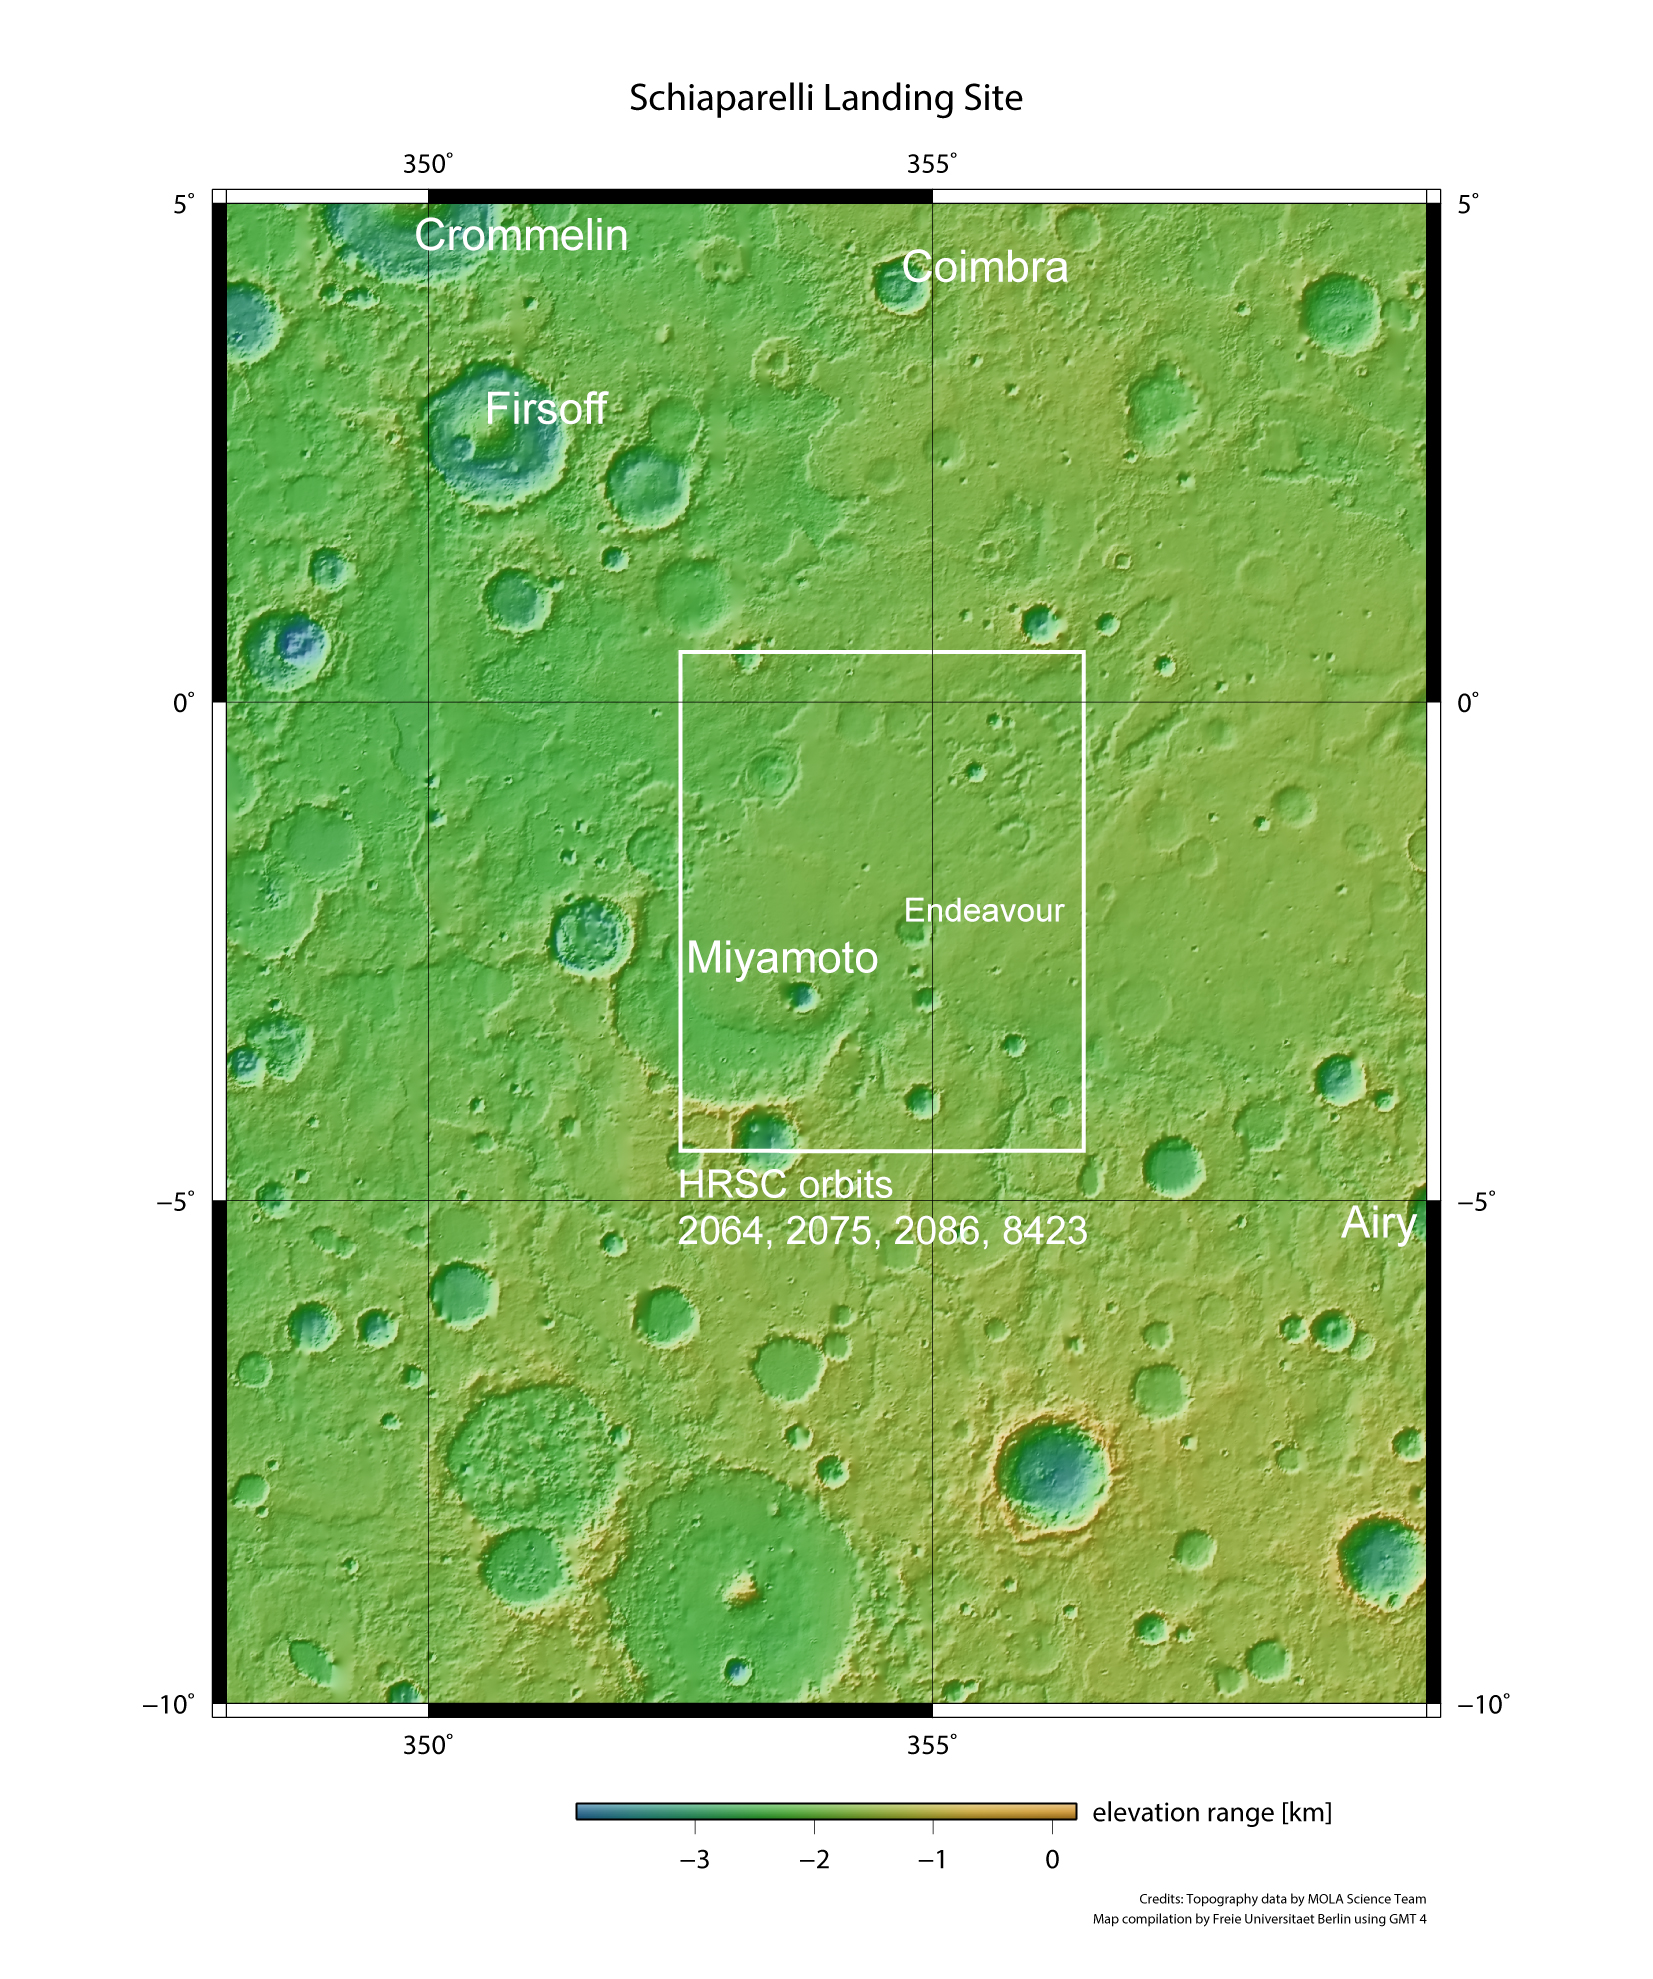 Meridiani_Planum_in_context